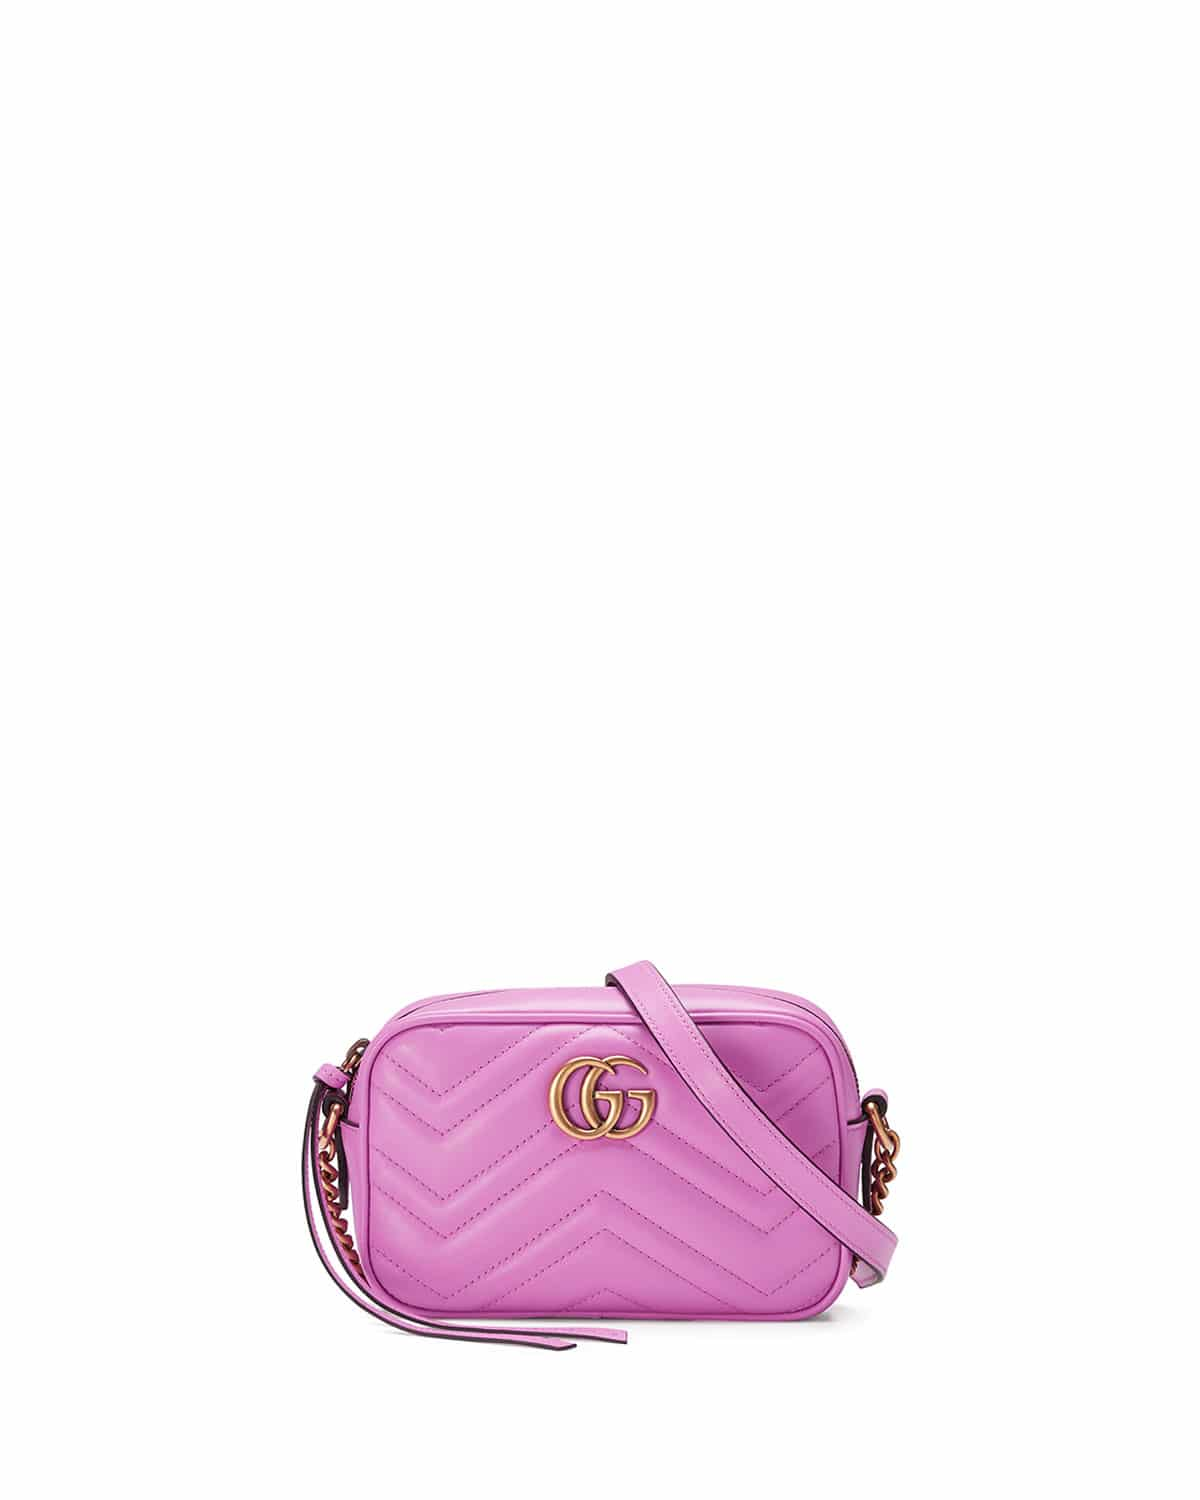 Gucci Marmont Mini Camera Bag Price Confederated Tribes Of The Umatilla Indian Reservation